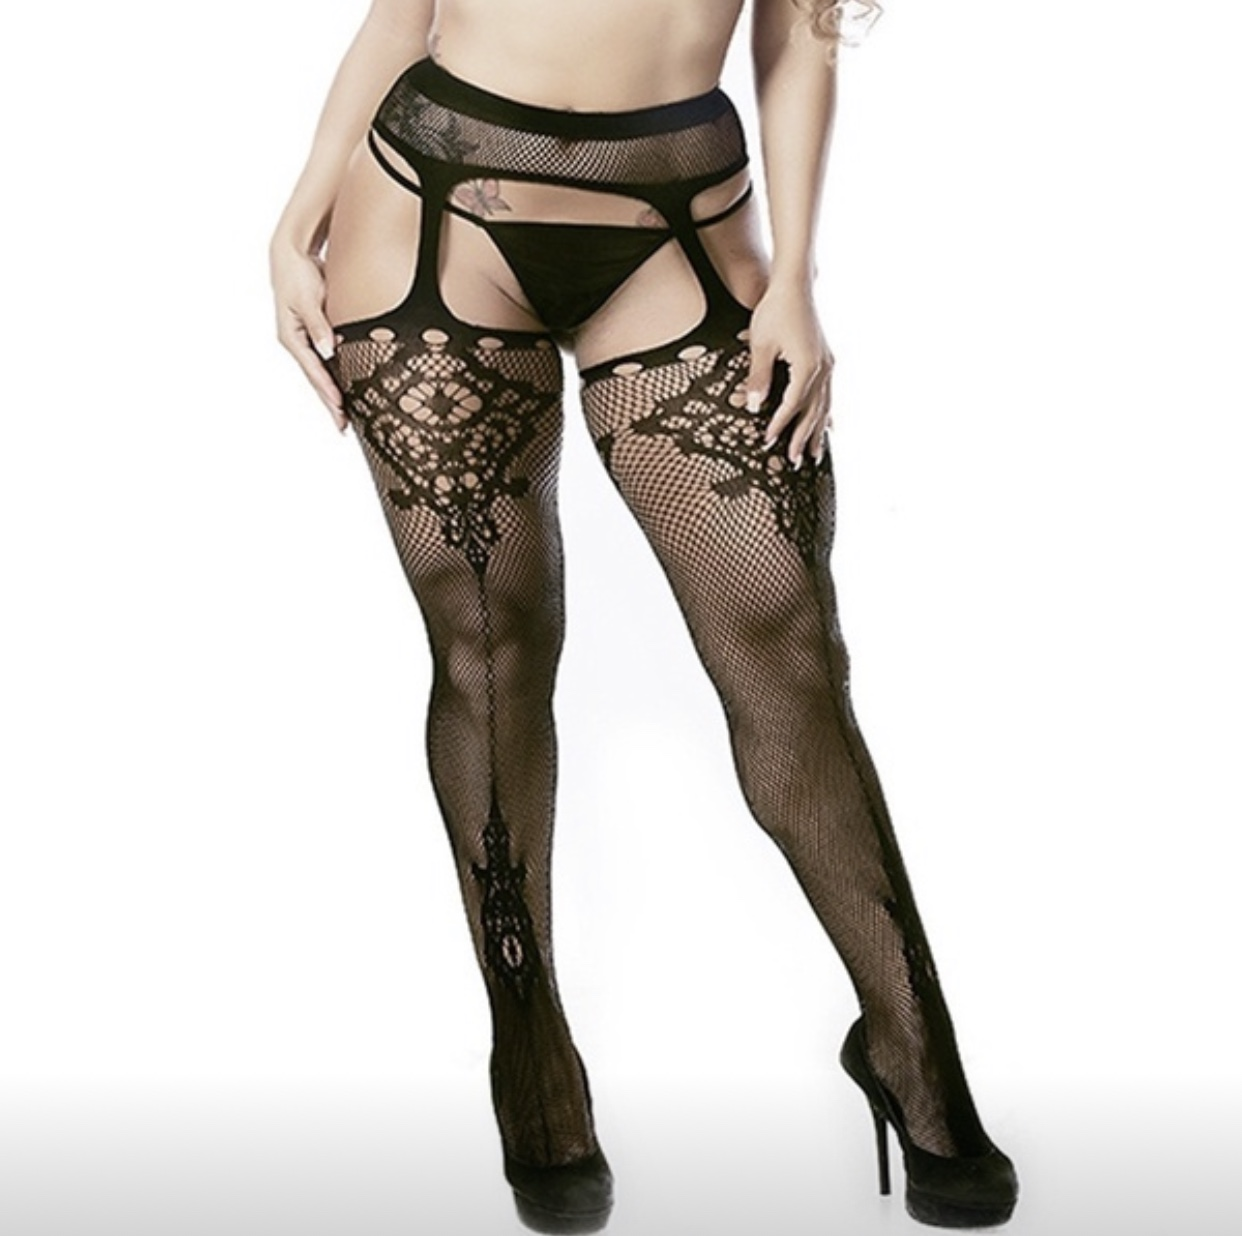 Sexy plus size fishnet tights